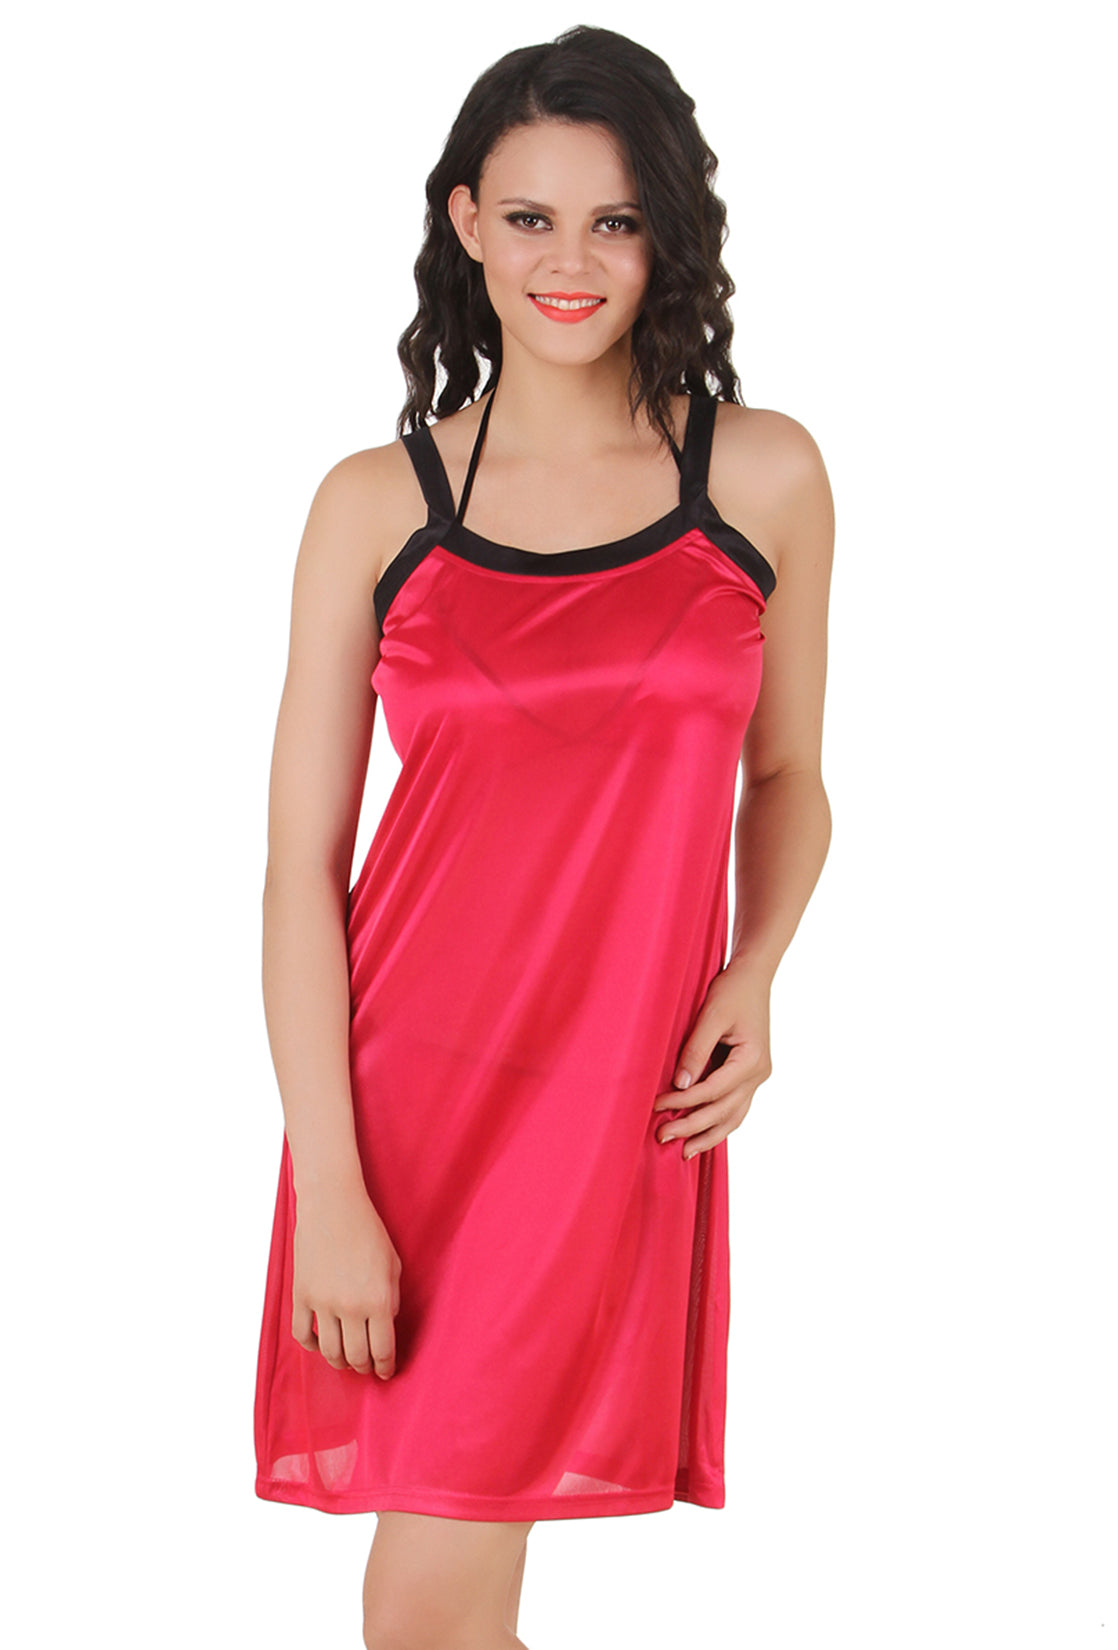 Fasense Solid  Satin Nightwear Short Nighty DP146 - fasensestore